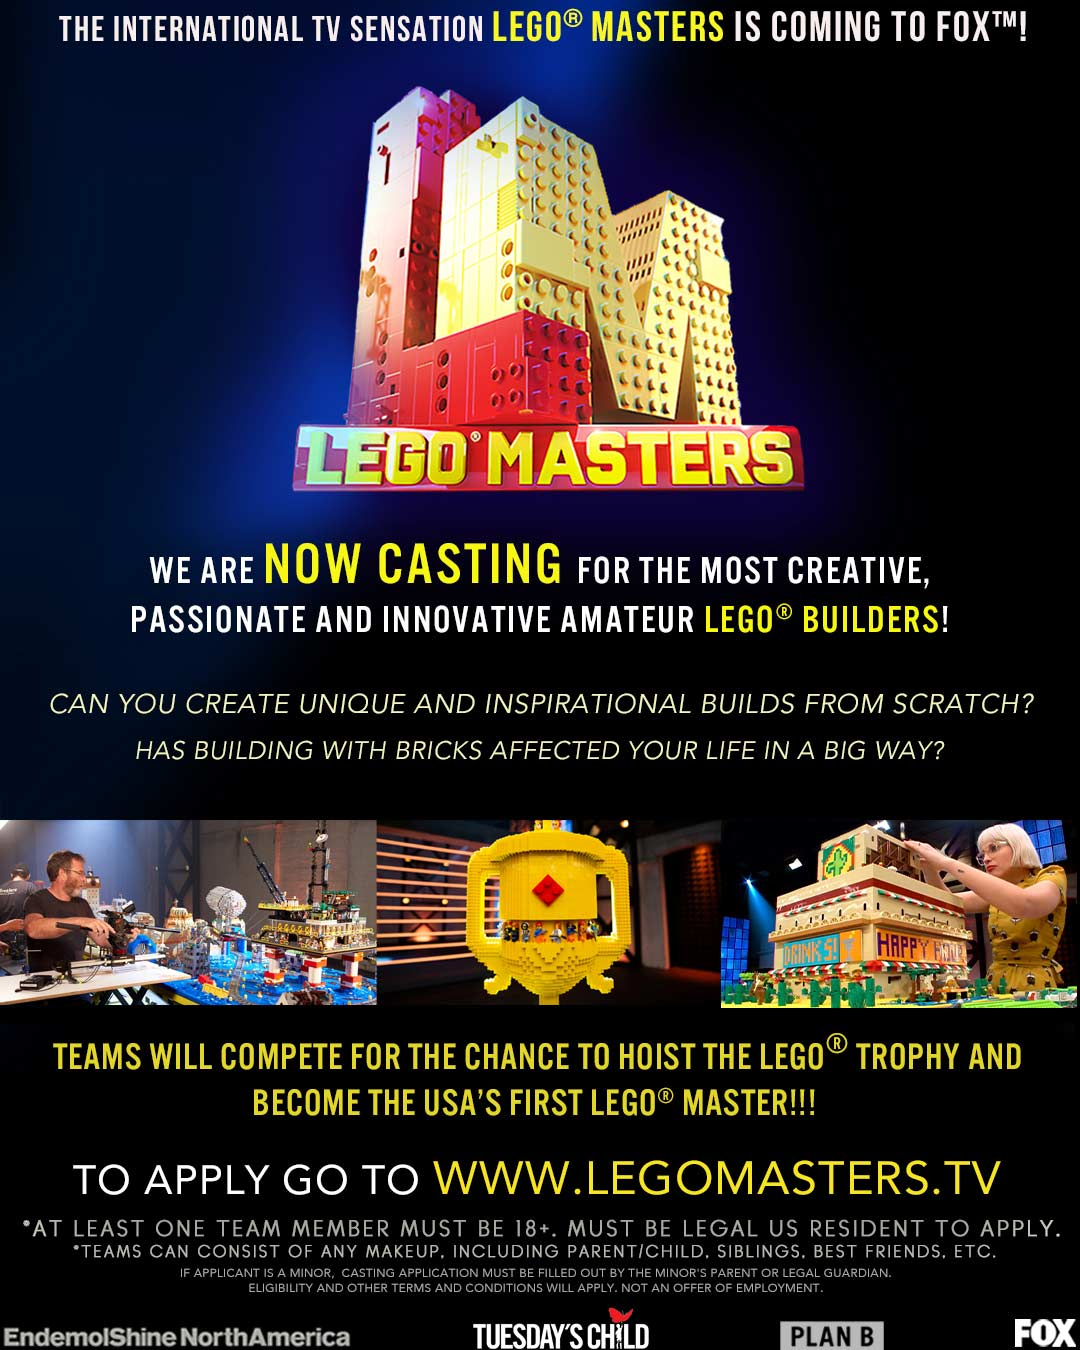 LEGO comes to reality TV on Fox and you can be part of it